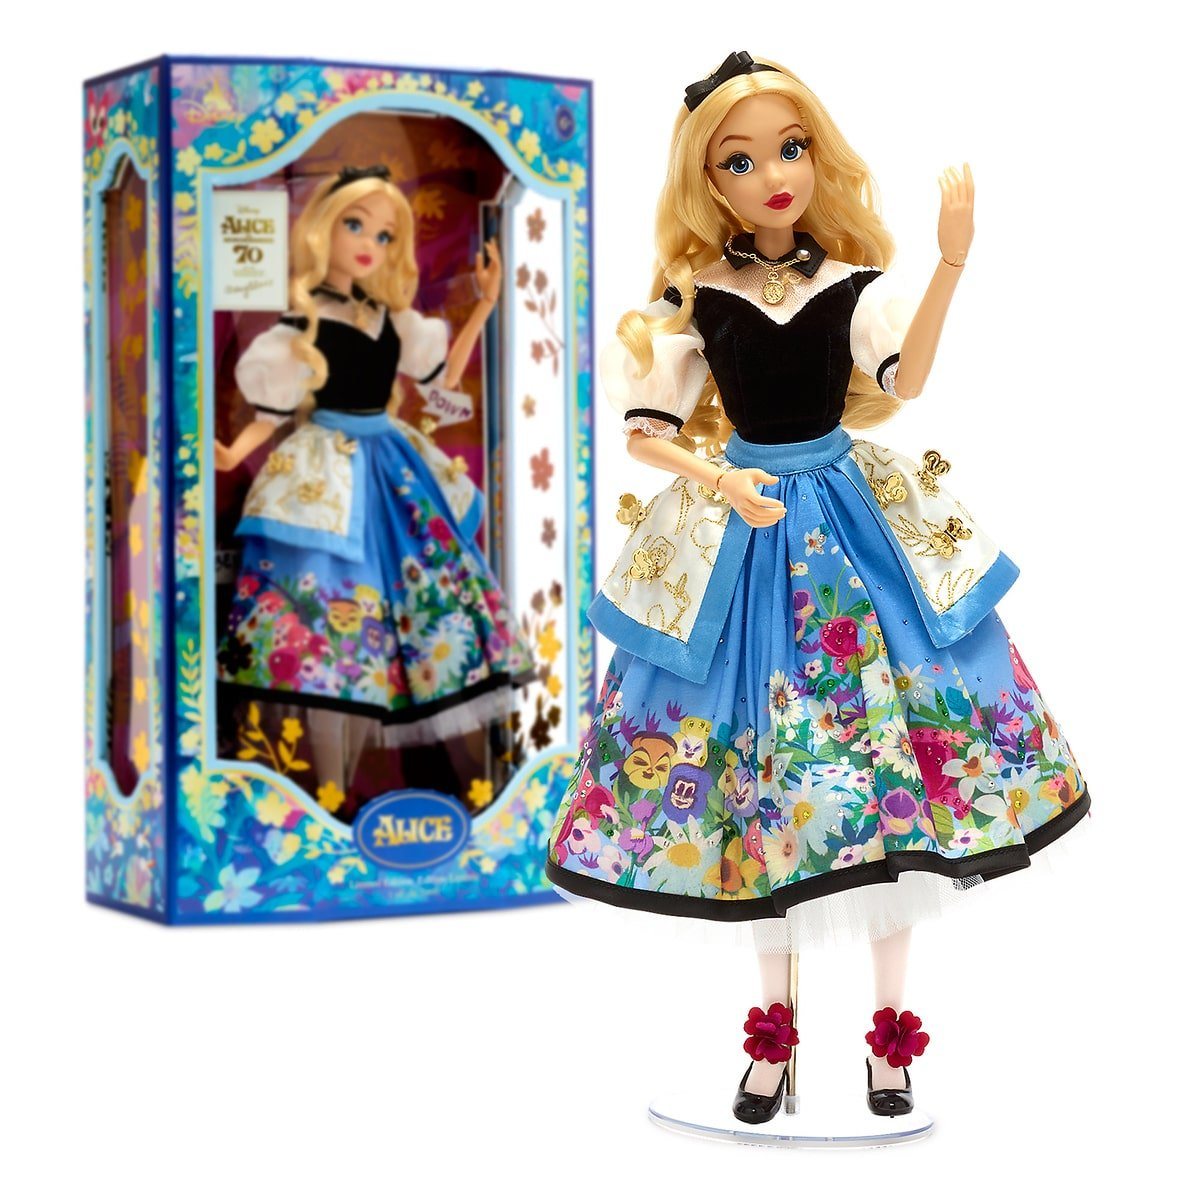 Disney's Alice in Wonderland marks its 70th anniversary with a Mary Blair-inspired doll 17